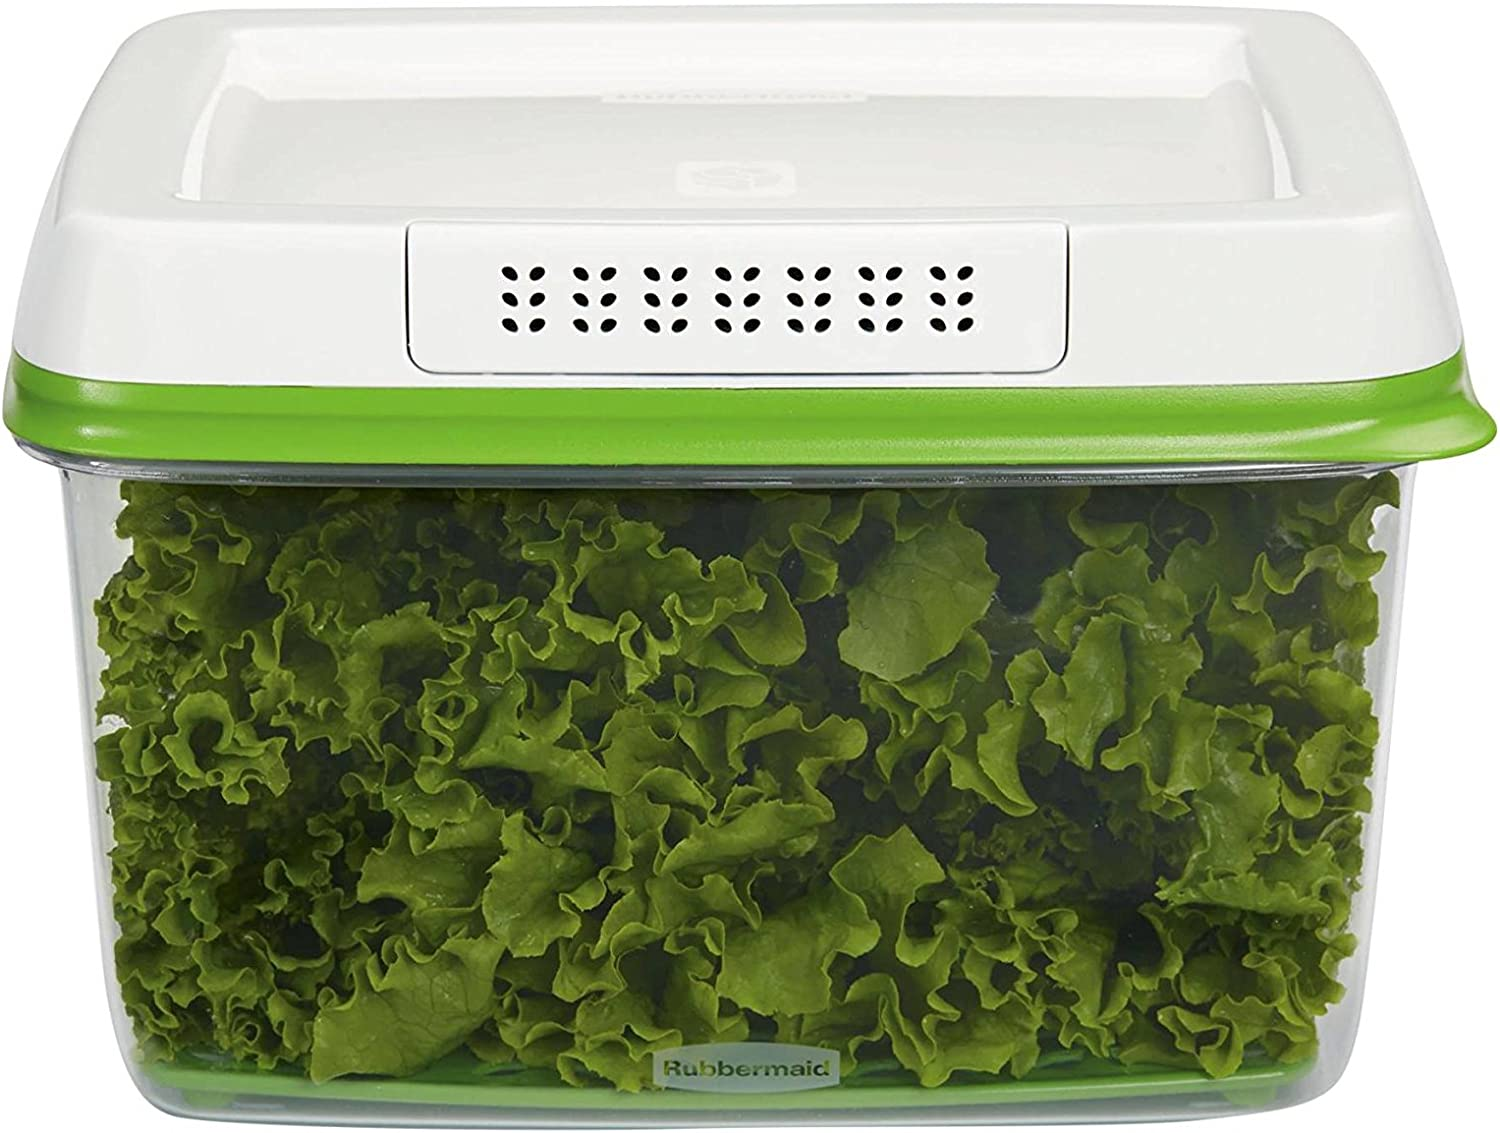 Rubbermaid FreshWorks Produce Saver Food Storage Container, Large, 17.3 Cup, Green 1953849